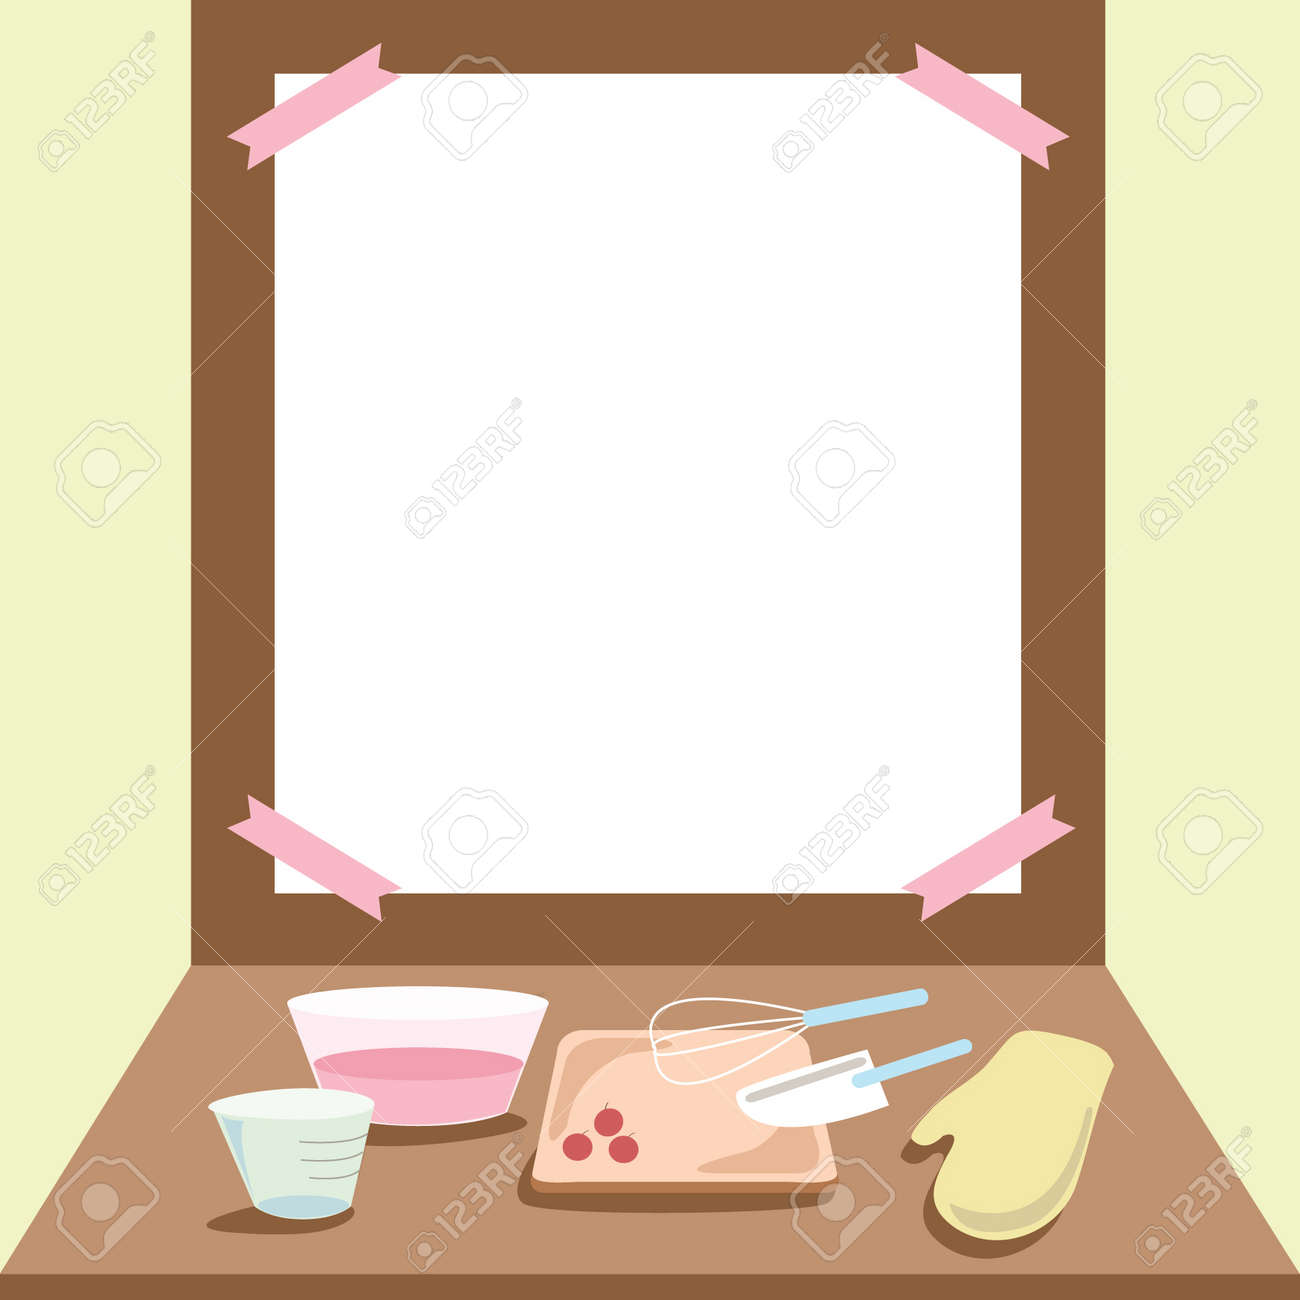 Set Of Kitchen Cooking Tools On Wood Table With Empty Space Background Vector Illustration Stock